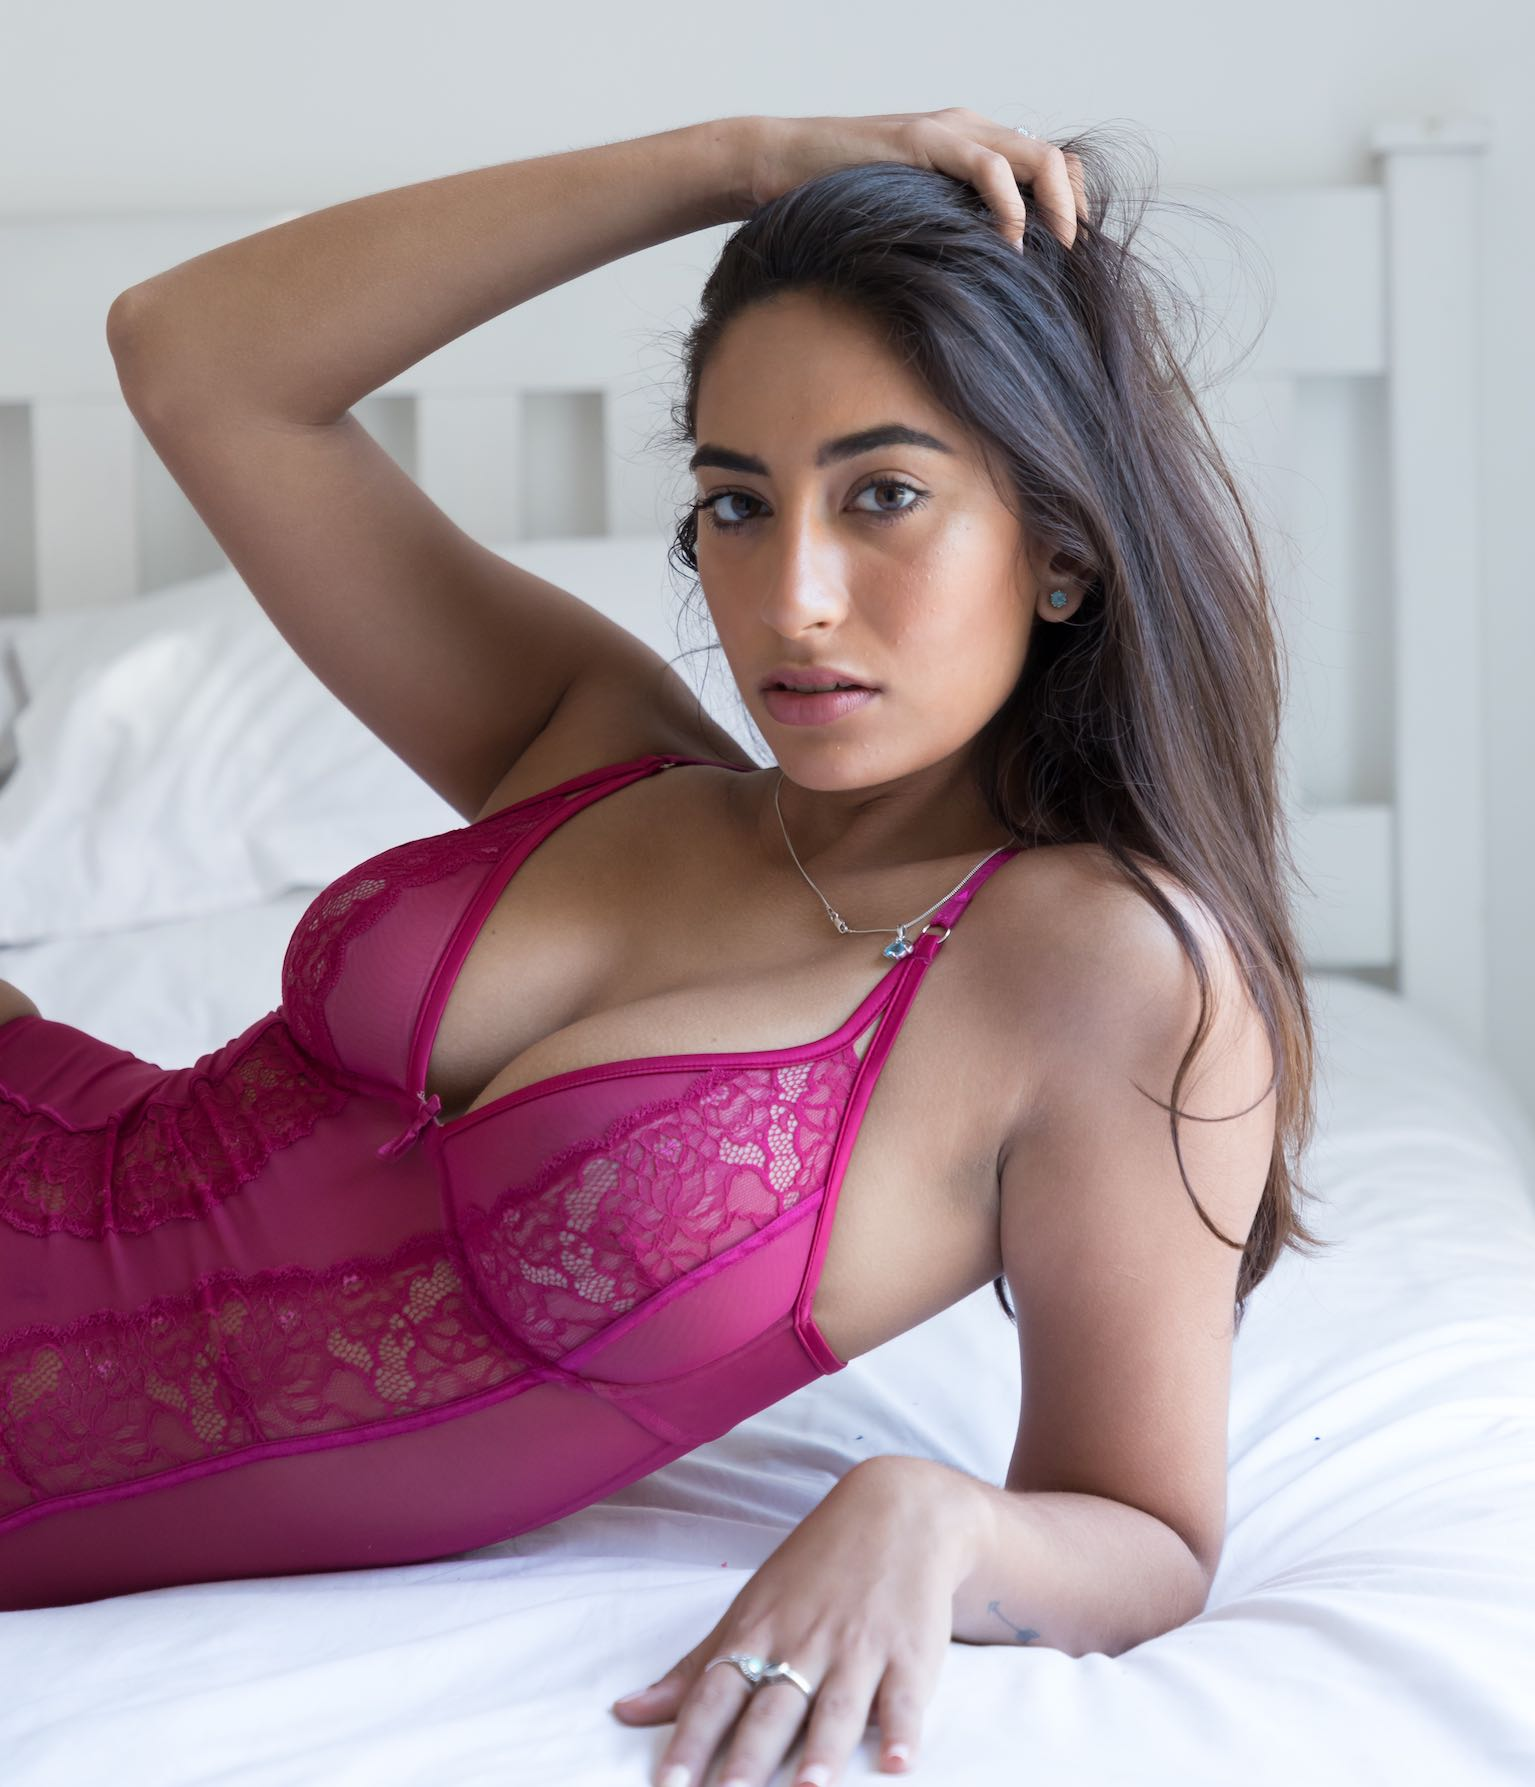 Hayley Kathoke in our latest SA babes feature